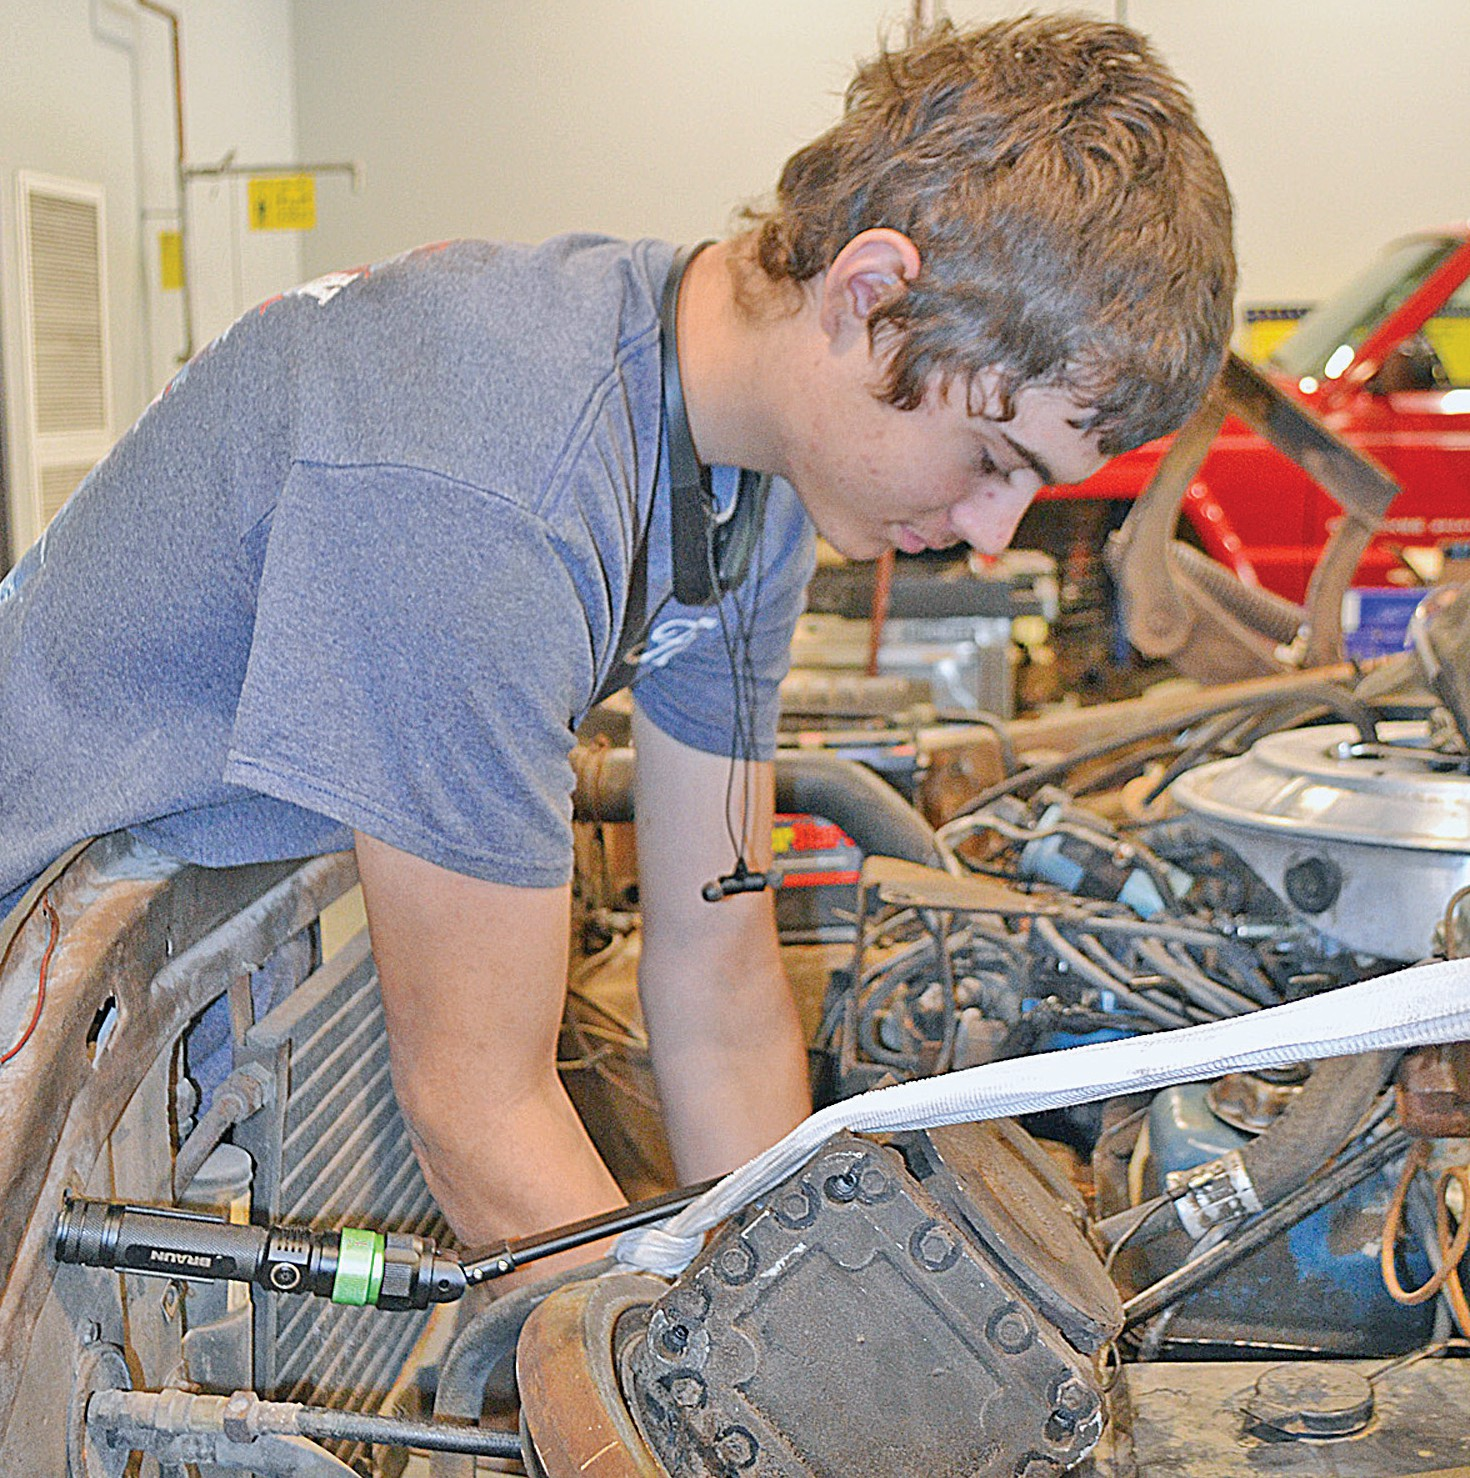 I2 student Michael Burke working on car